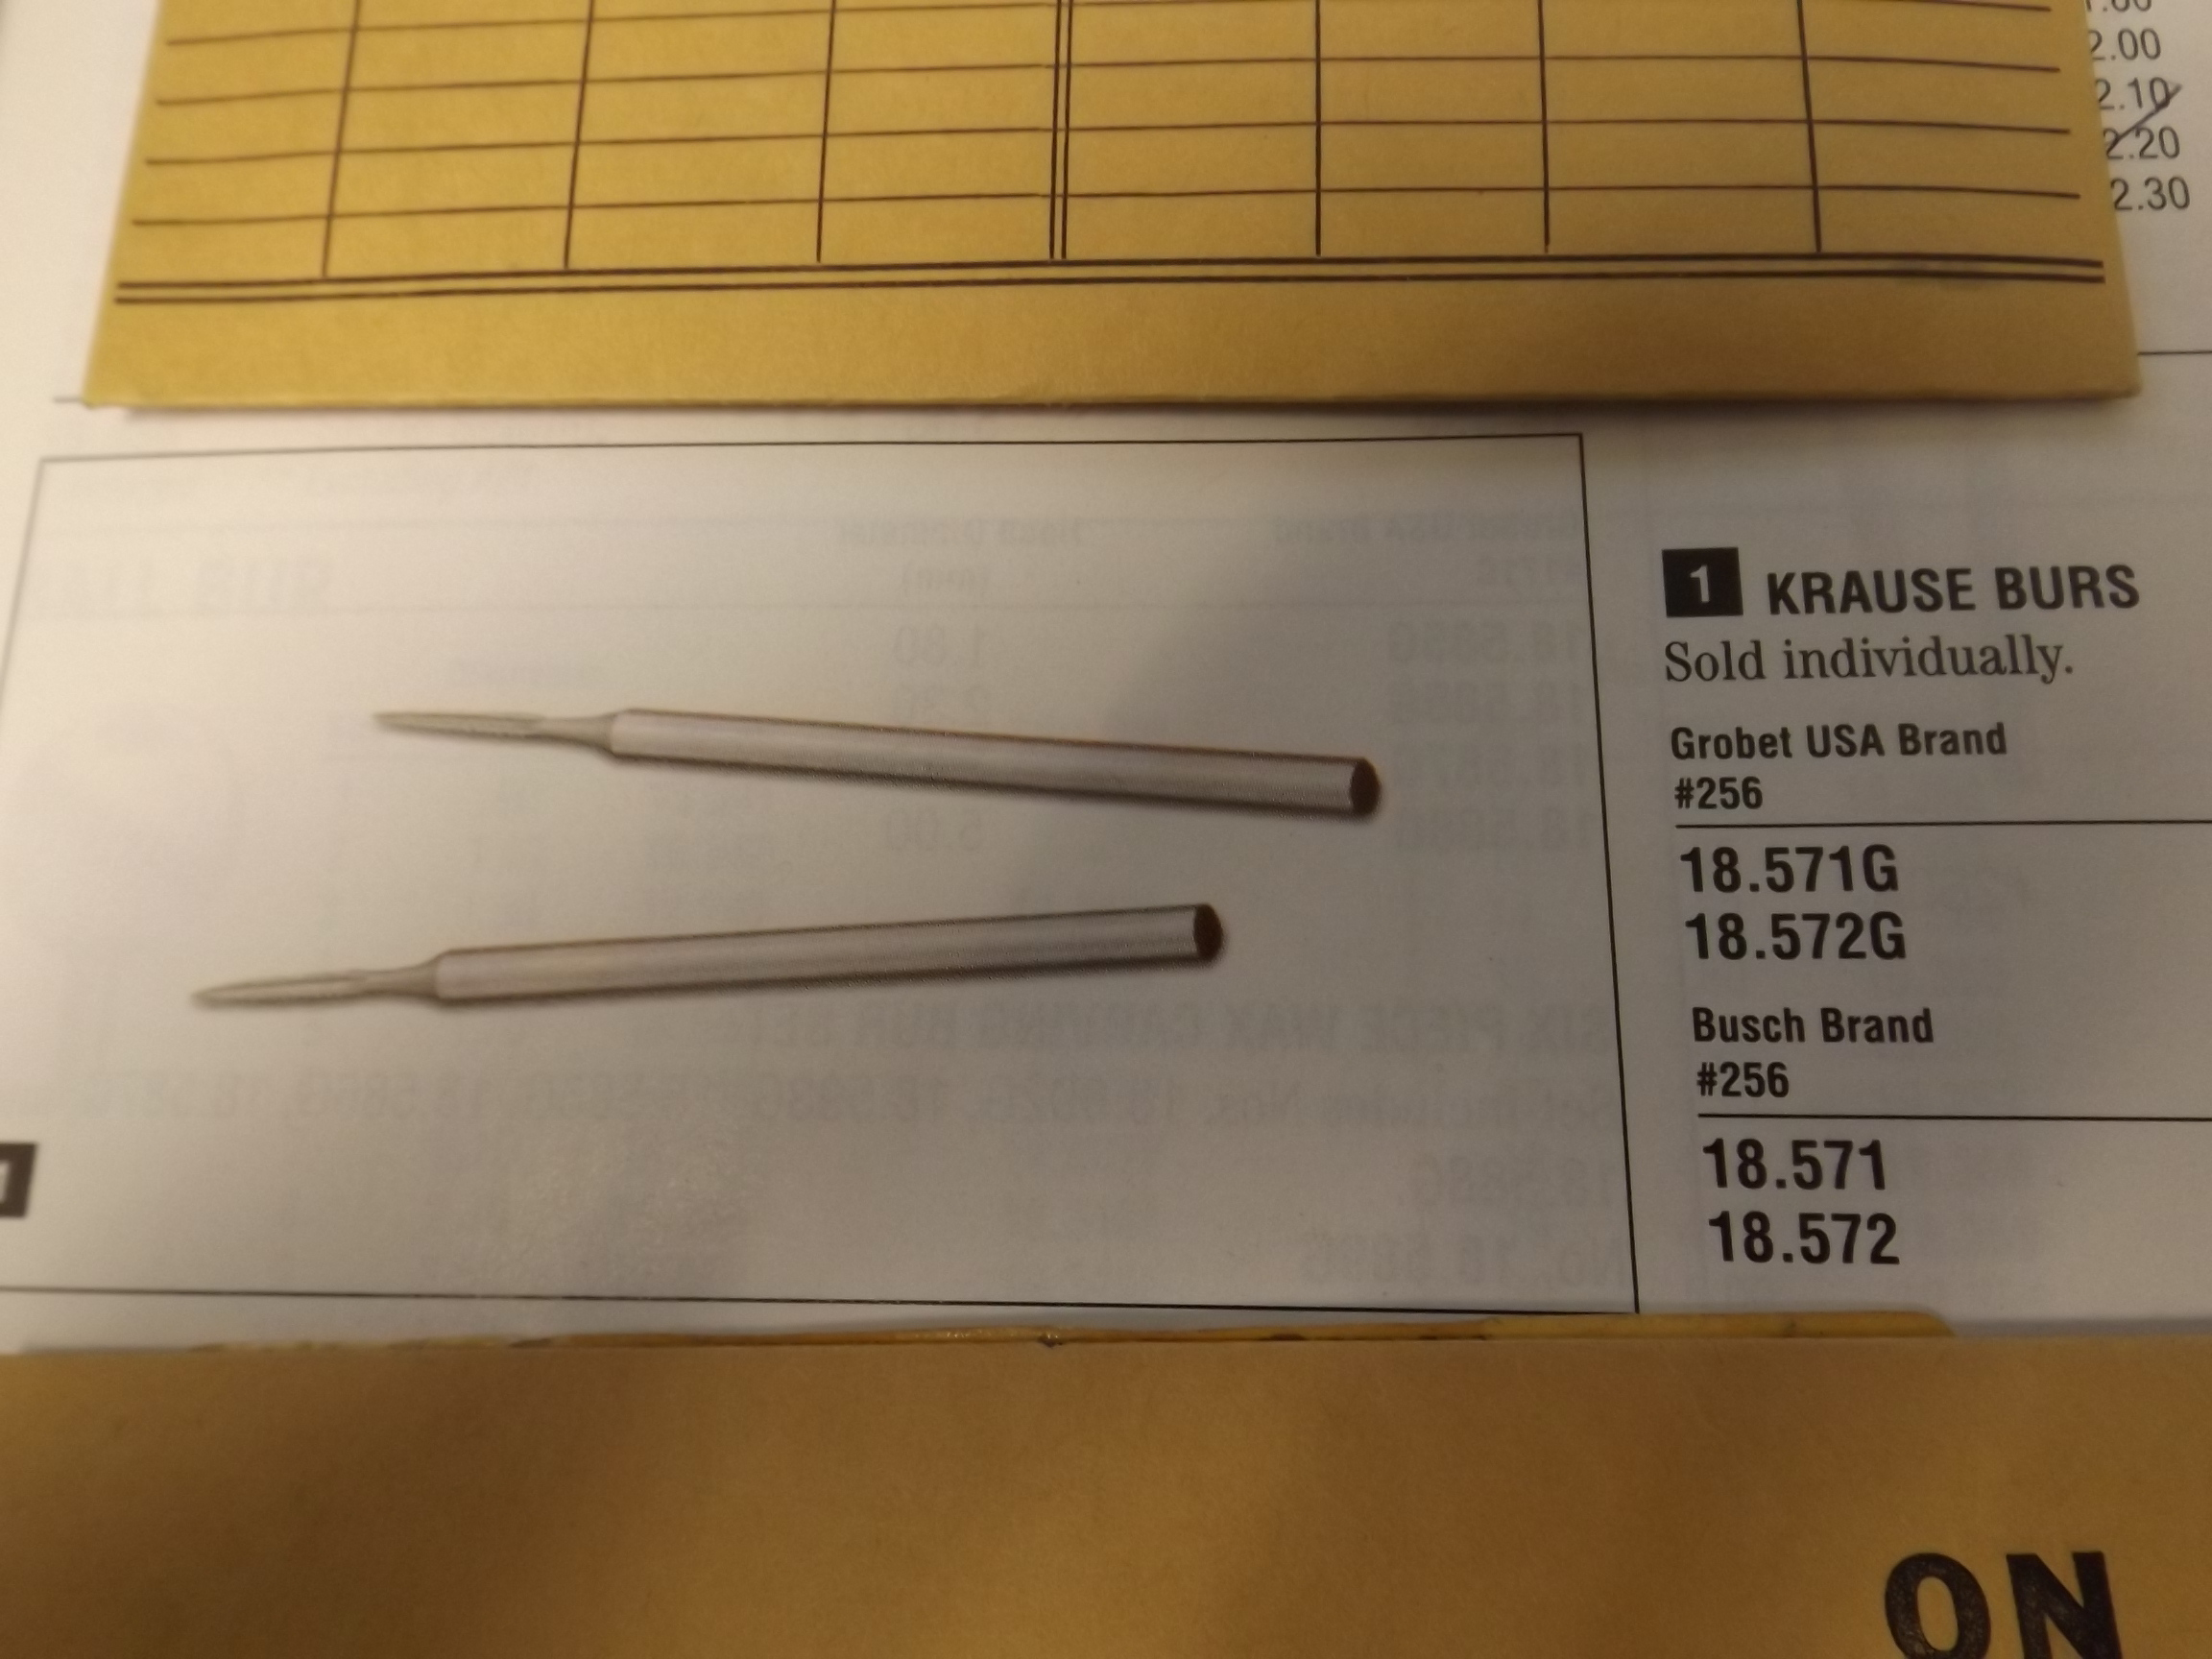 BR18.572G Krause Burs- Grobet Brand--4 pieces left!